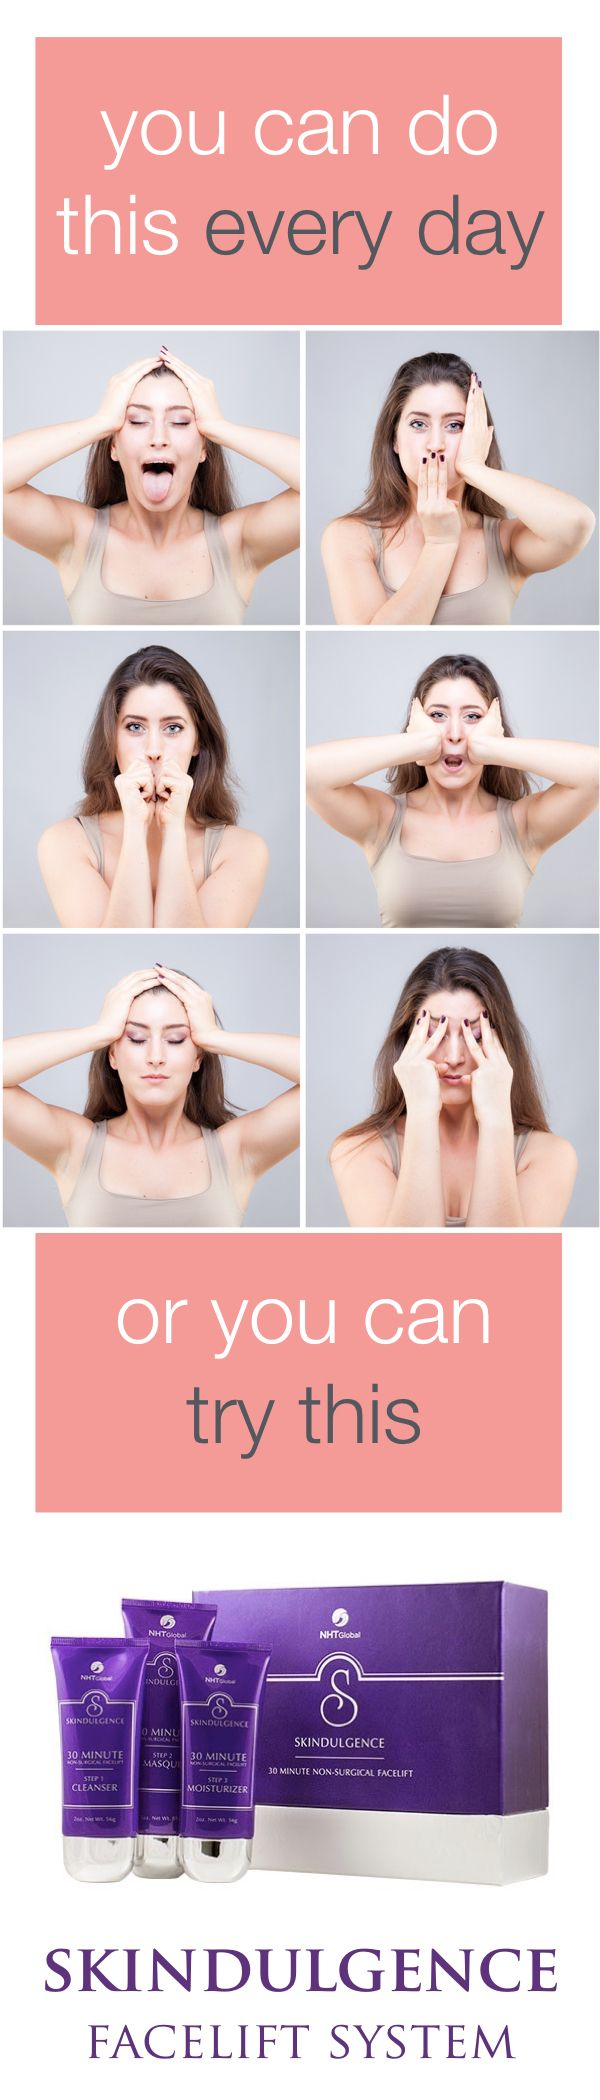 30-Minute Non-Surgical Facelift System is often compared to an exercise program for your face. #facelift #faceyoga #AntiAgingSkincare